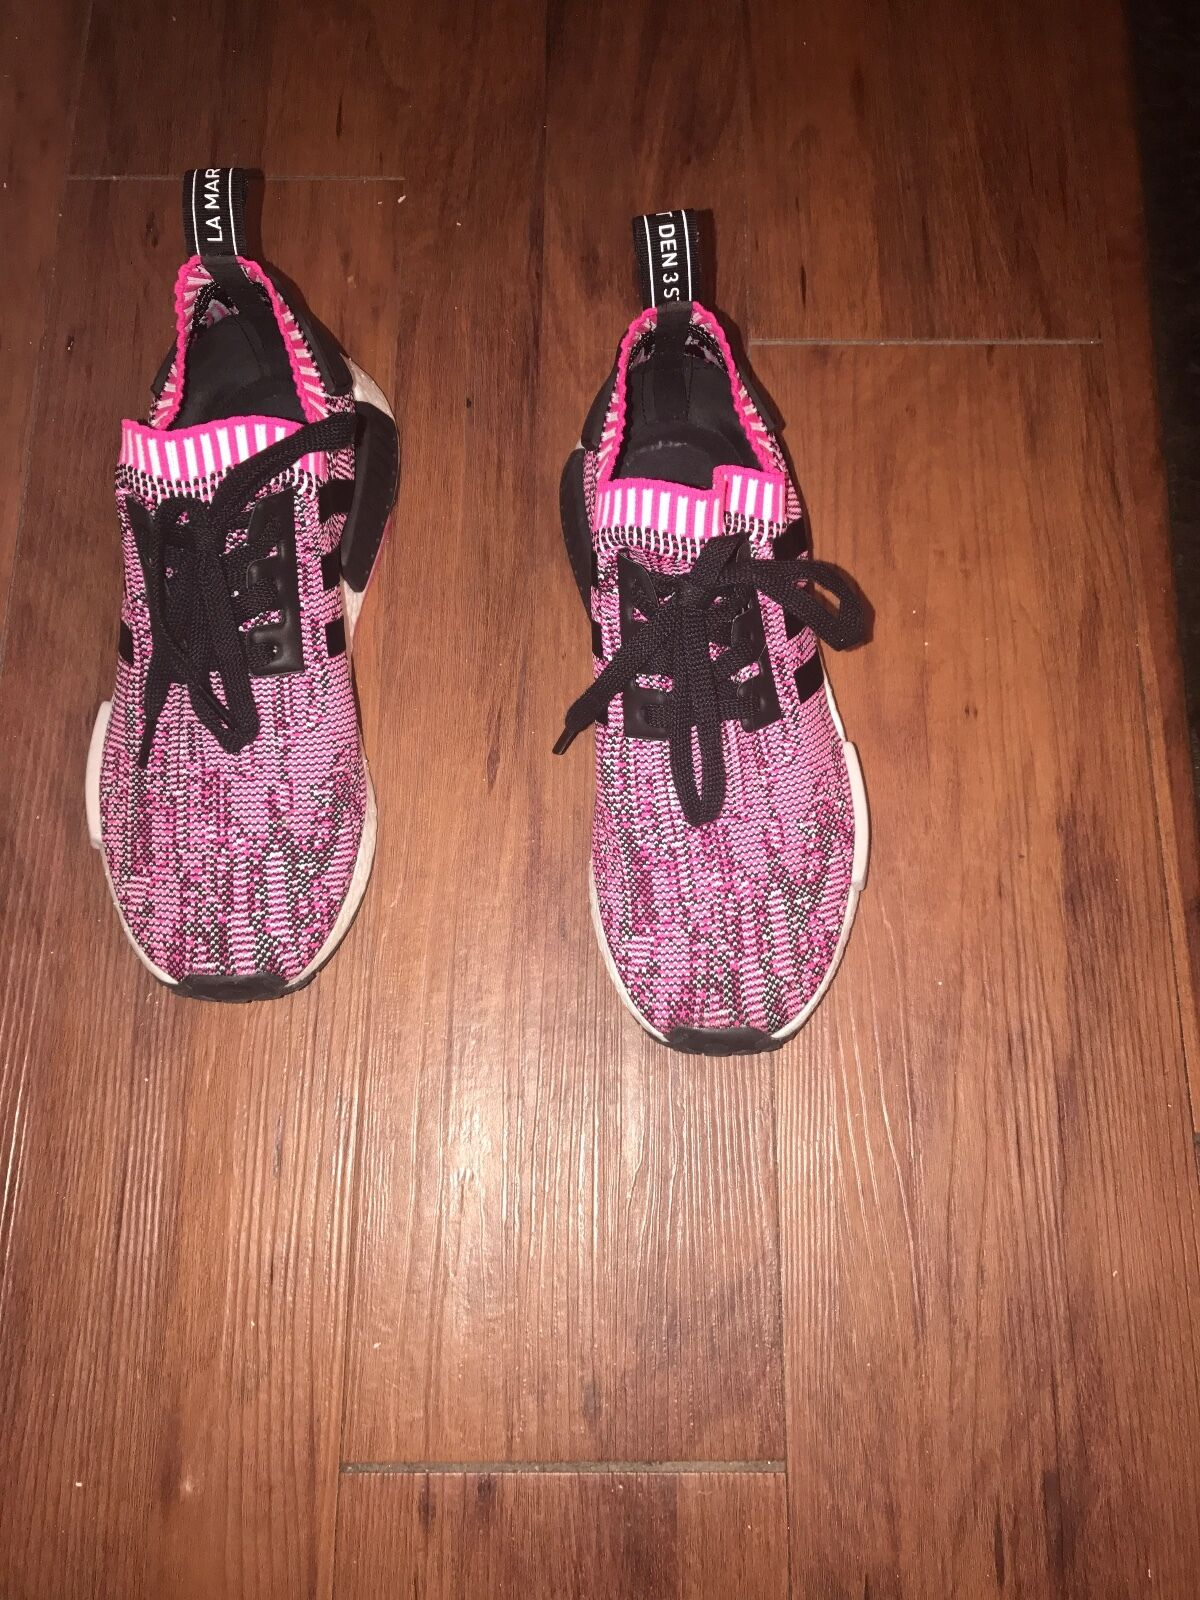 Adidas nmd  r1 womens, pink and black, size 8 8 8 e94830